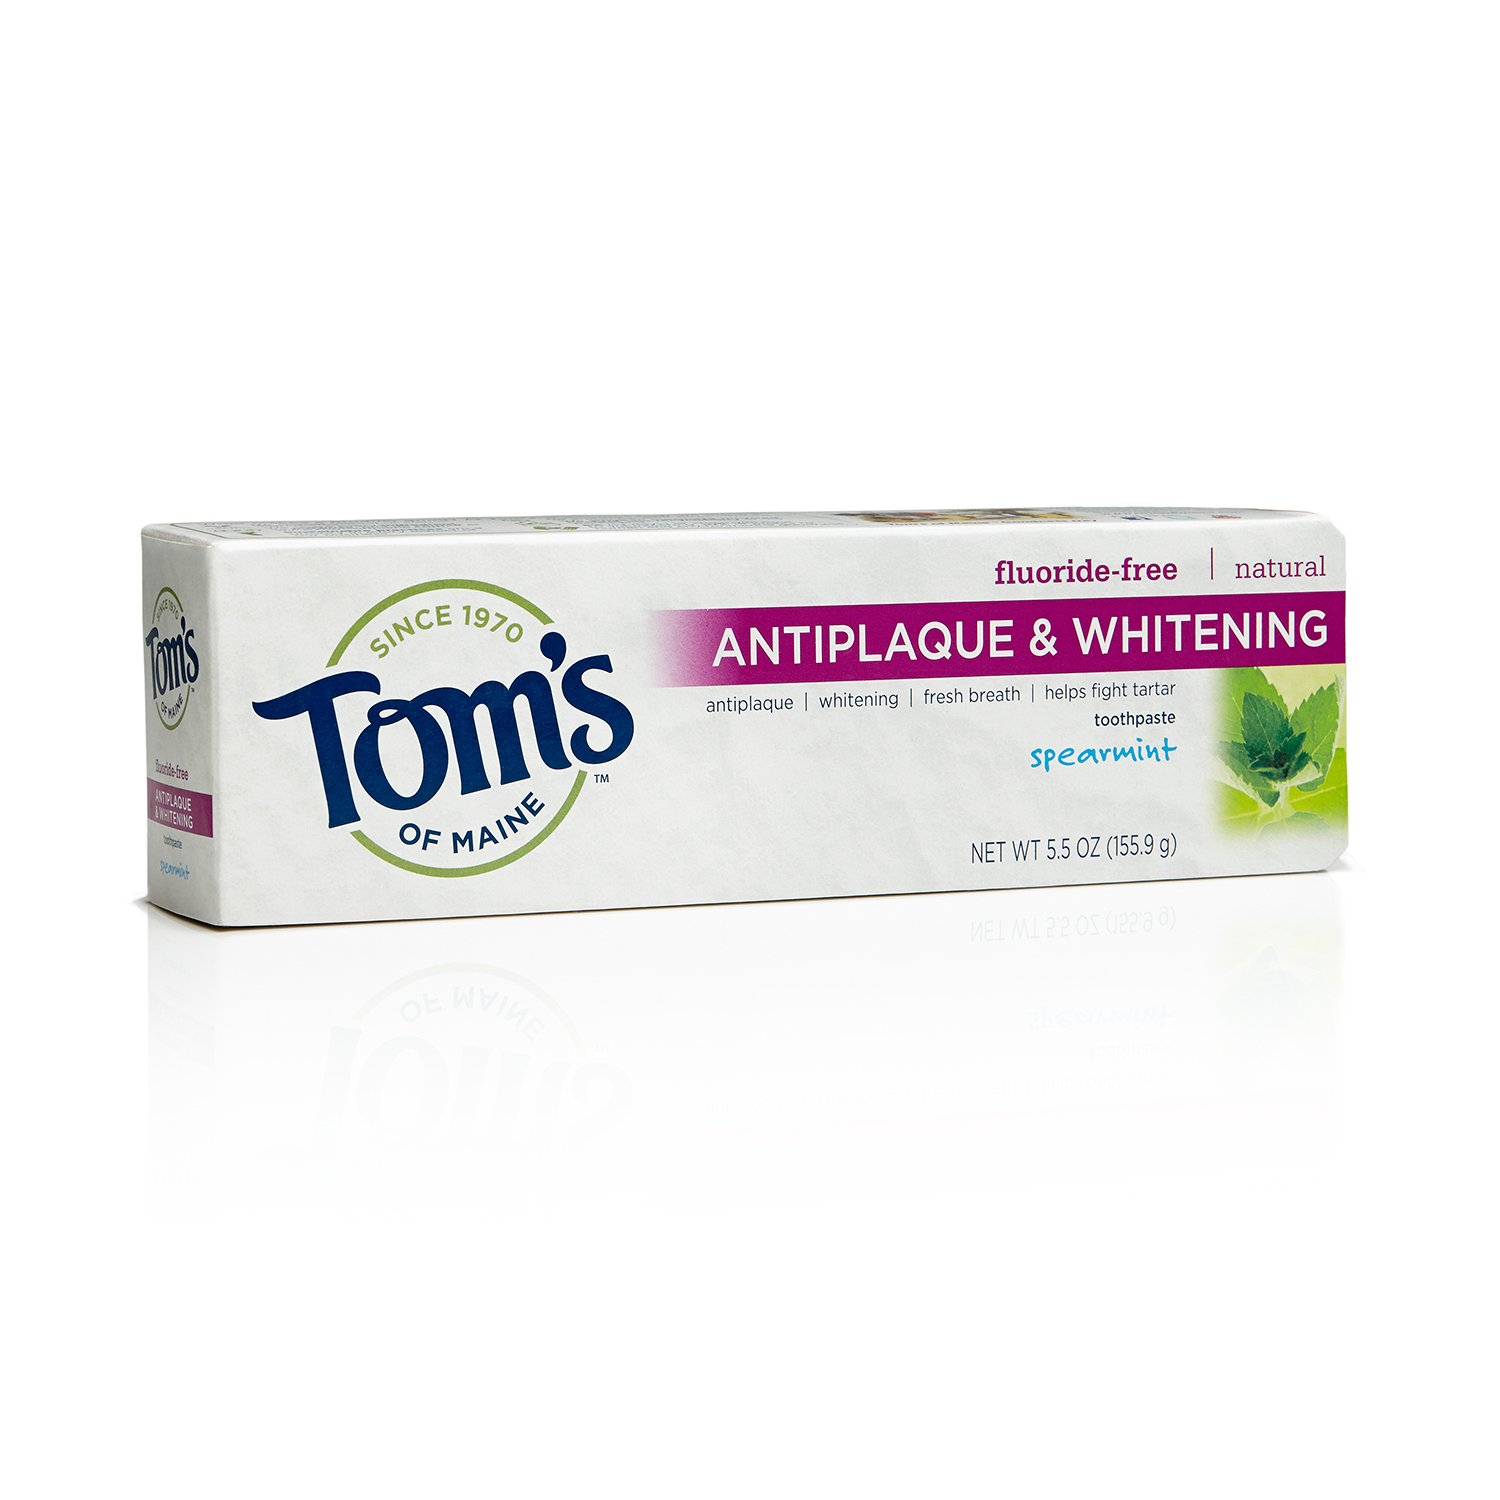 Tom's of Maine 683086 Antiplaque and Whitening Fluoride-Free Natural Toothpaste, Spearmint, 5.5 Ounce, 24 Count